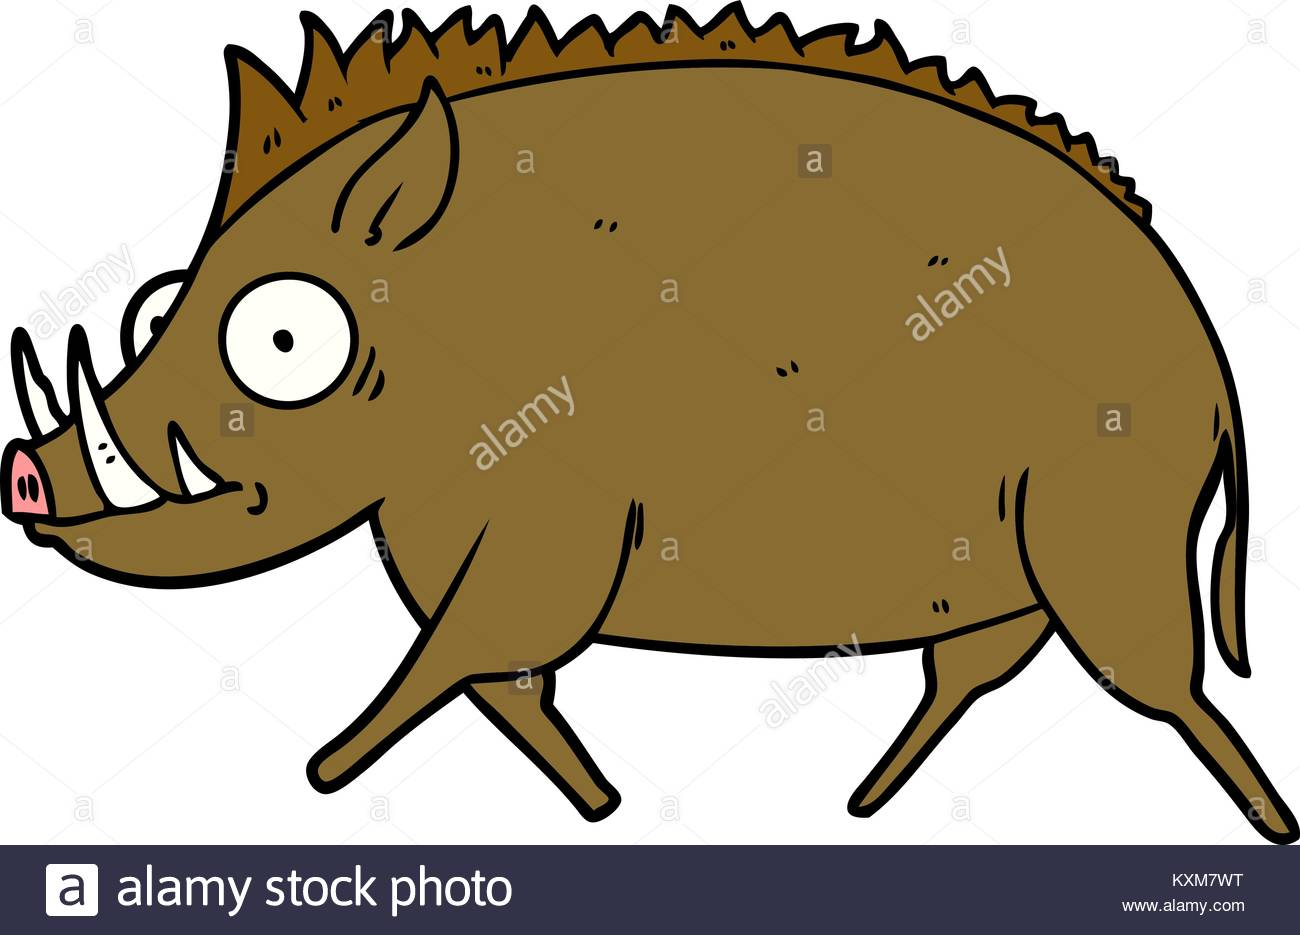 1300x935 Illustration Wild Boar Stock Photos Amp Illustration Wild Boar Stock